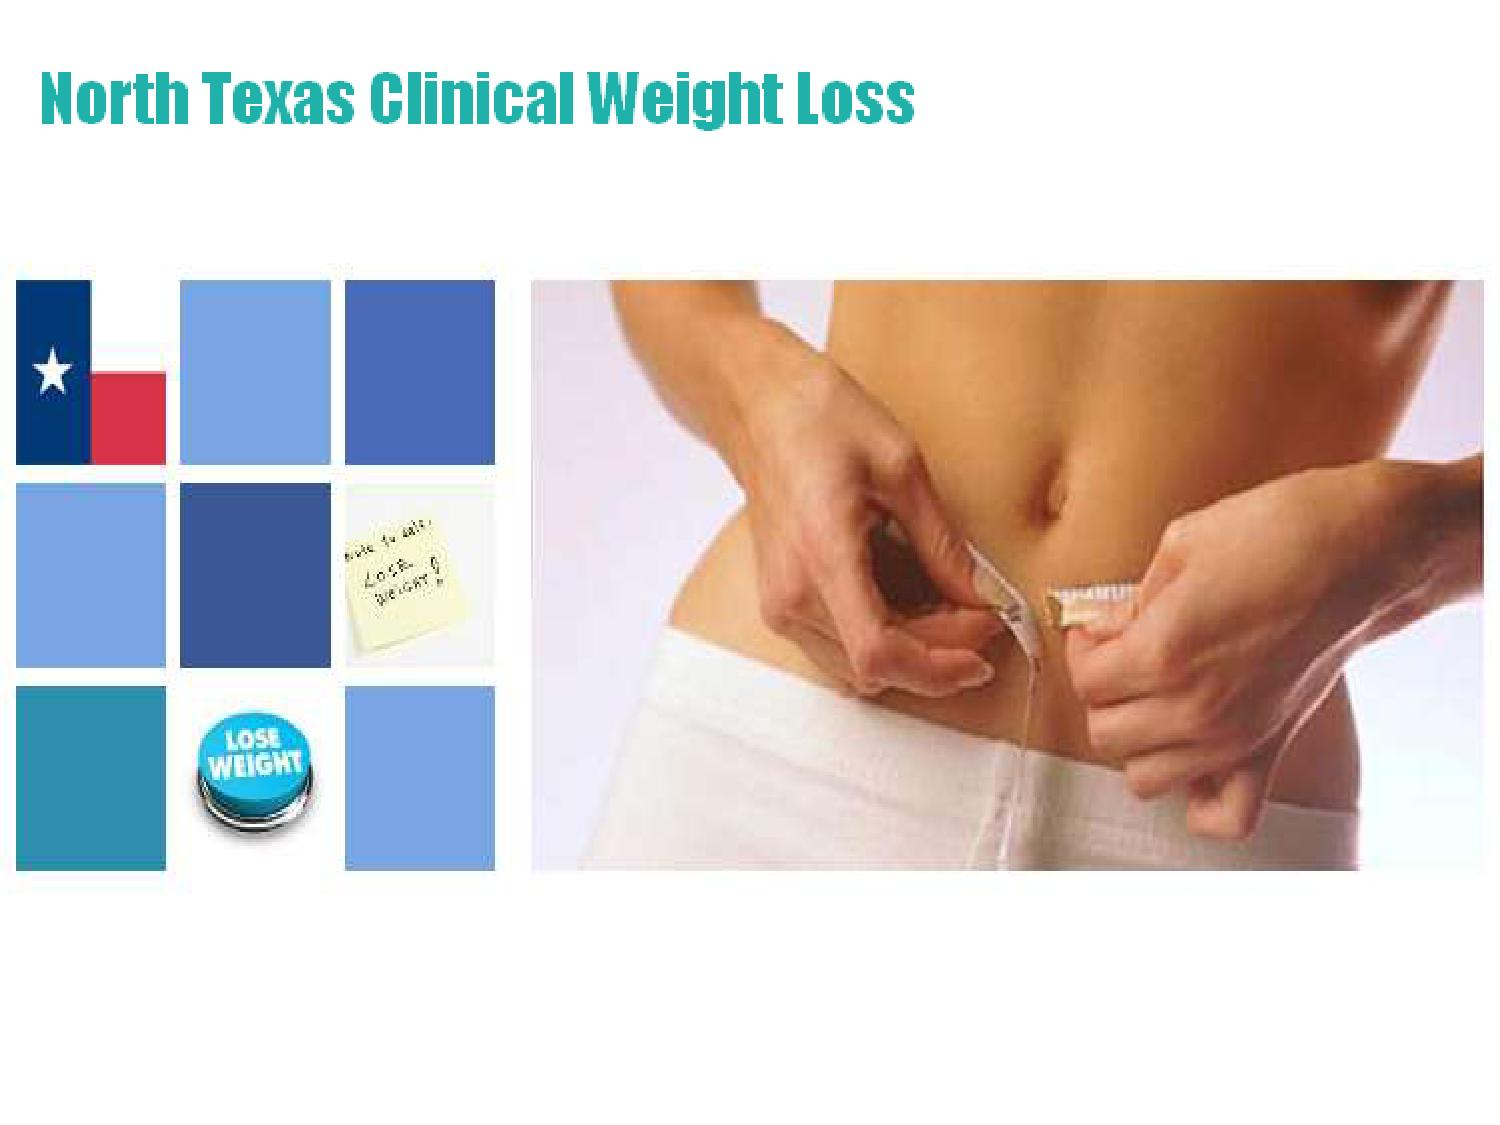 North texas clinical weight loss by ntxclinicalweightloss - issuu